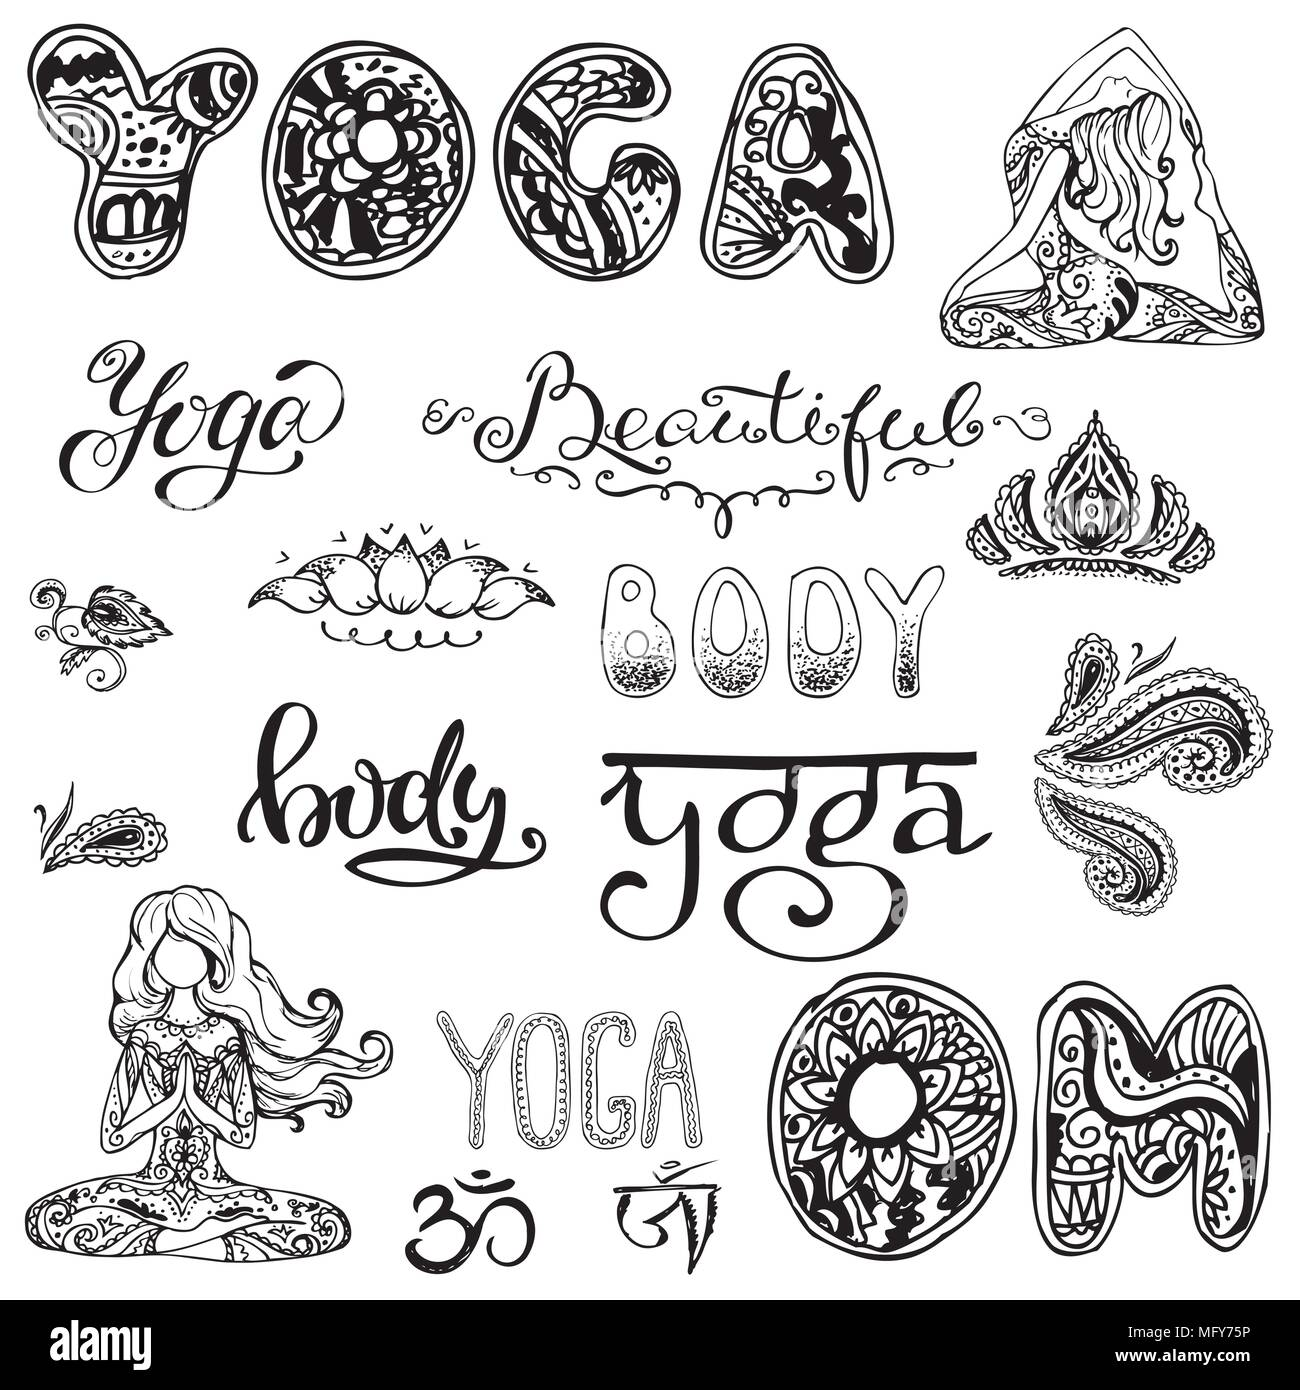 Yoga set with lettering,ornament,yoga pose.  - Stock Image